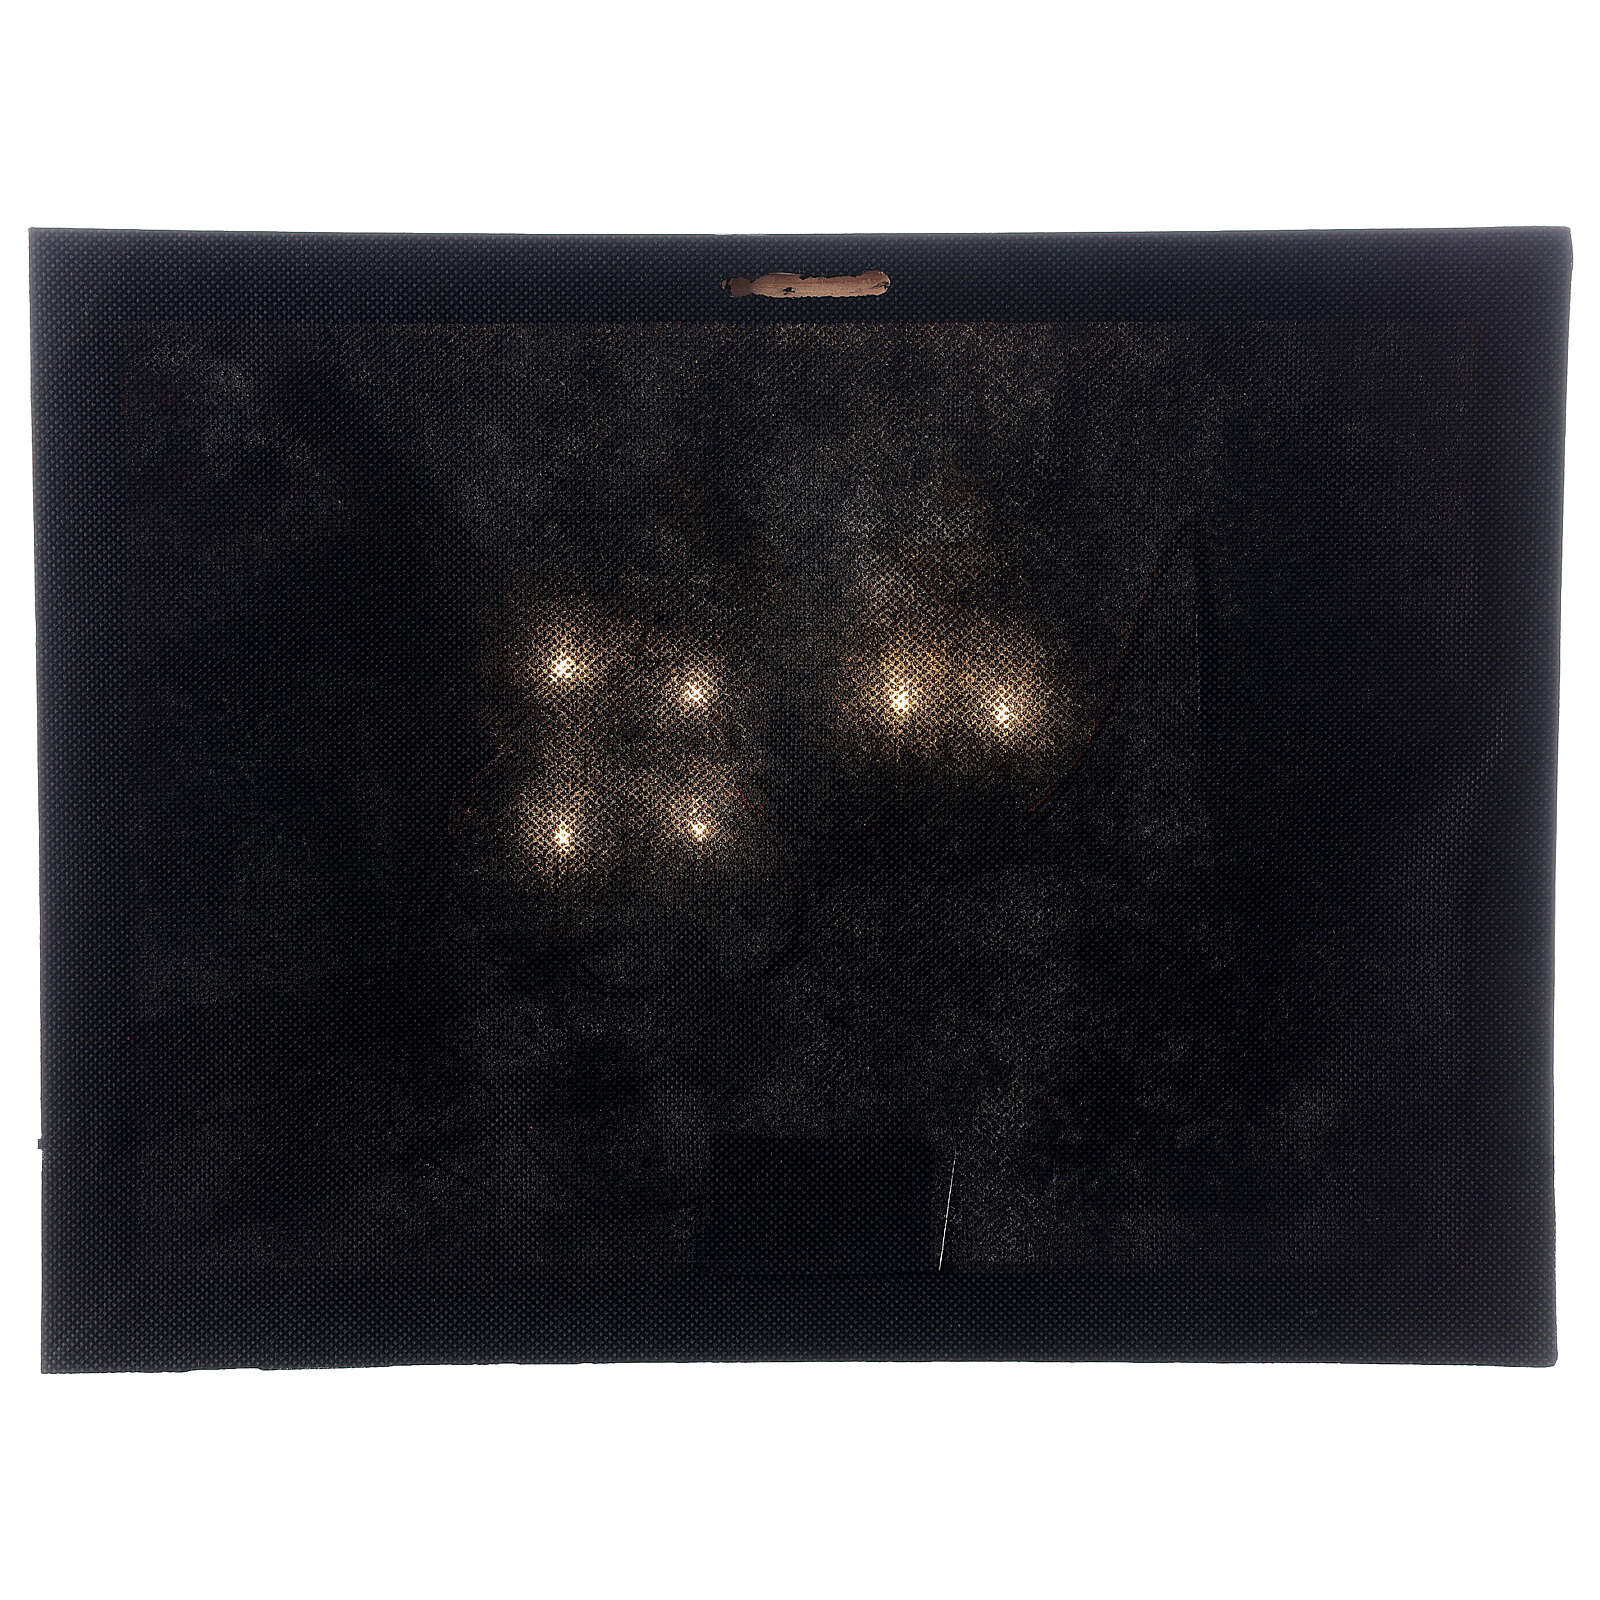 Snowy landscape, fiber optic lighted Christmas wall art, 30x40 cm 3